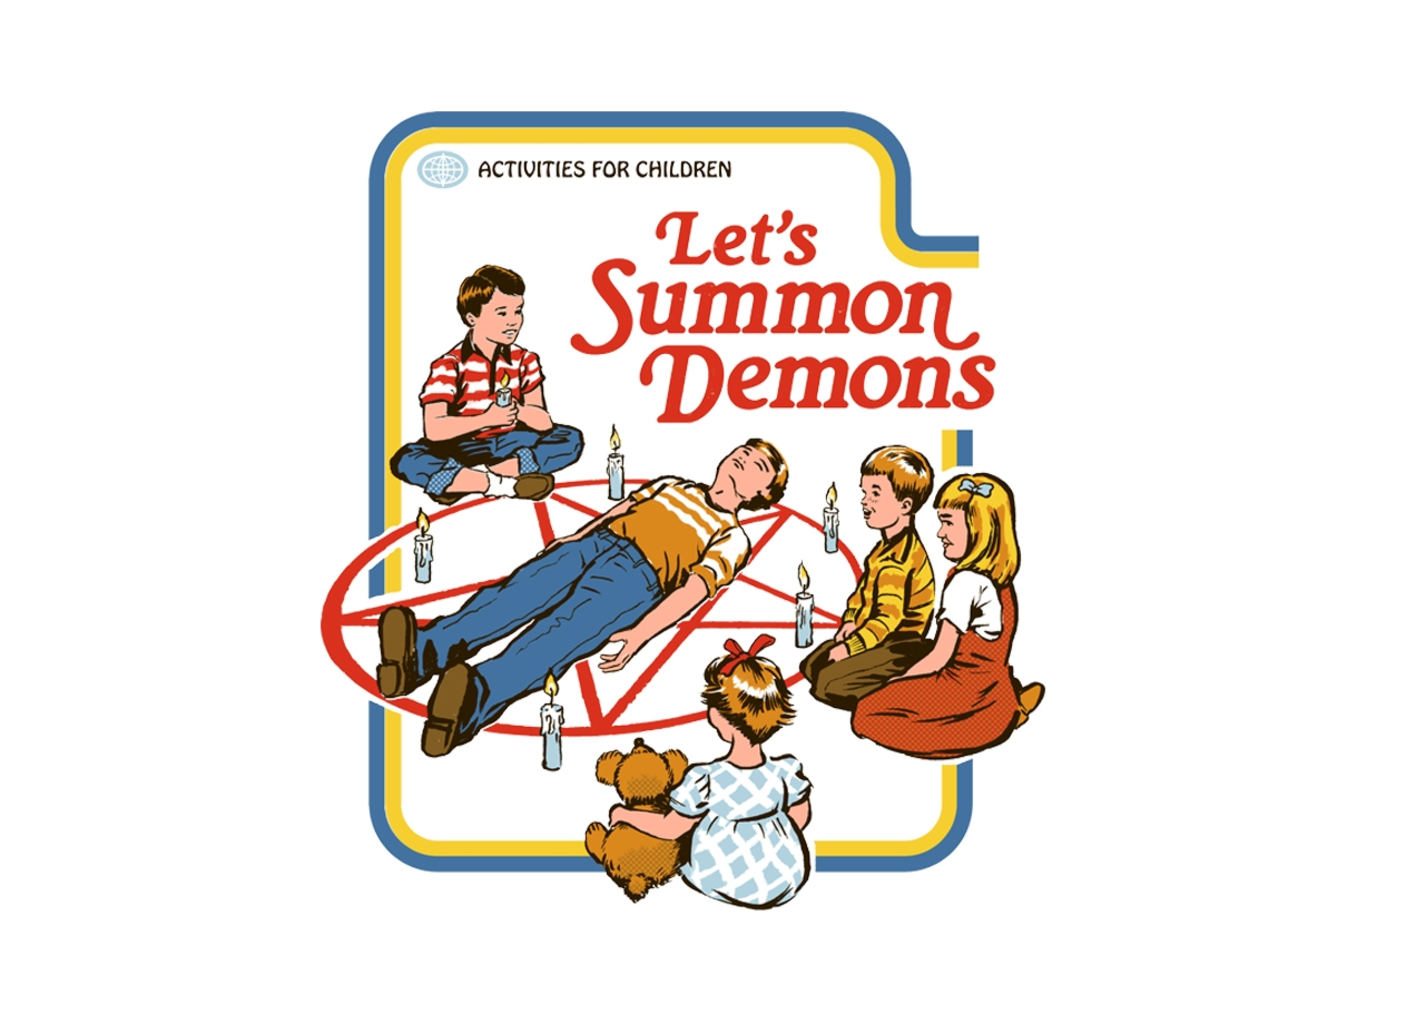 Threadless: Let's Summon Demons